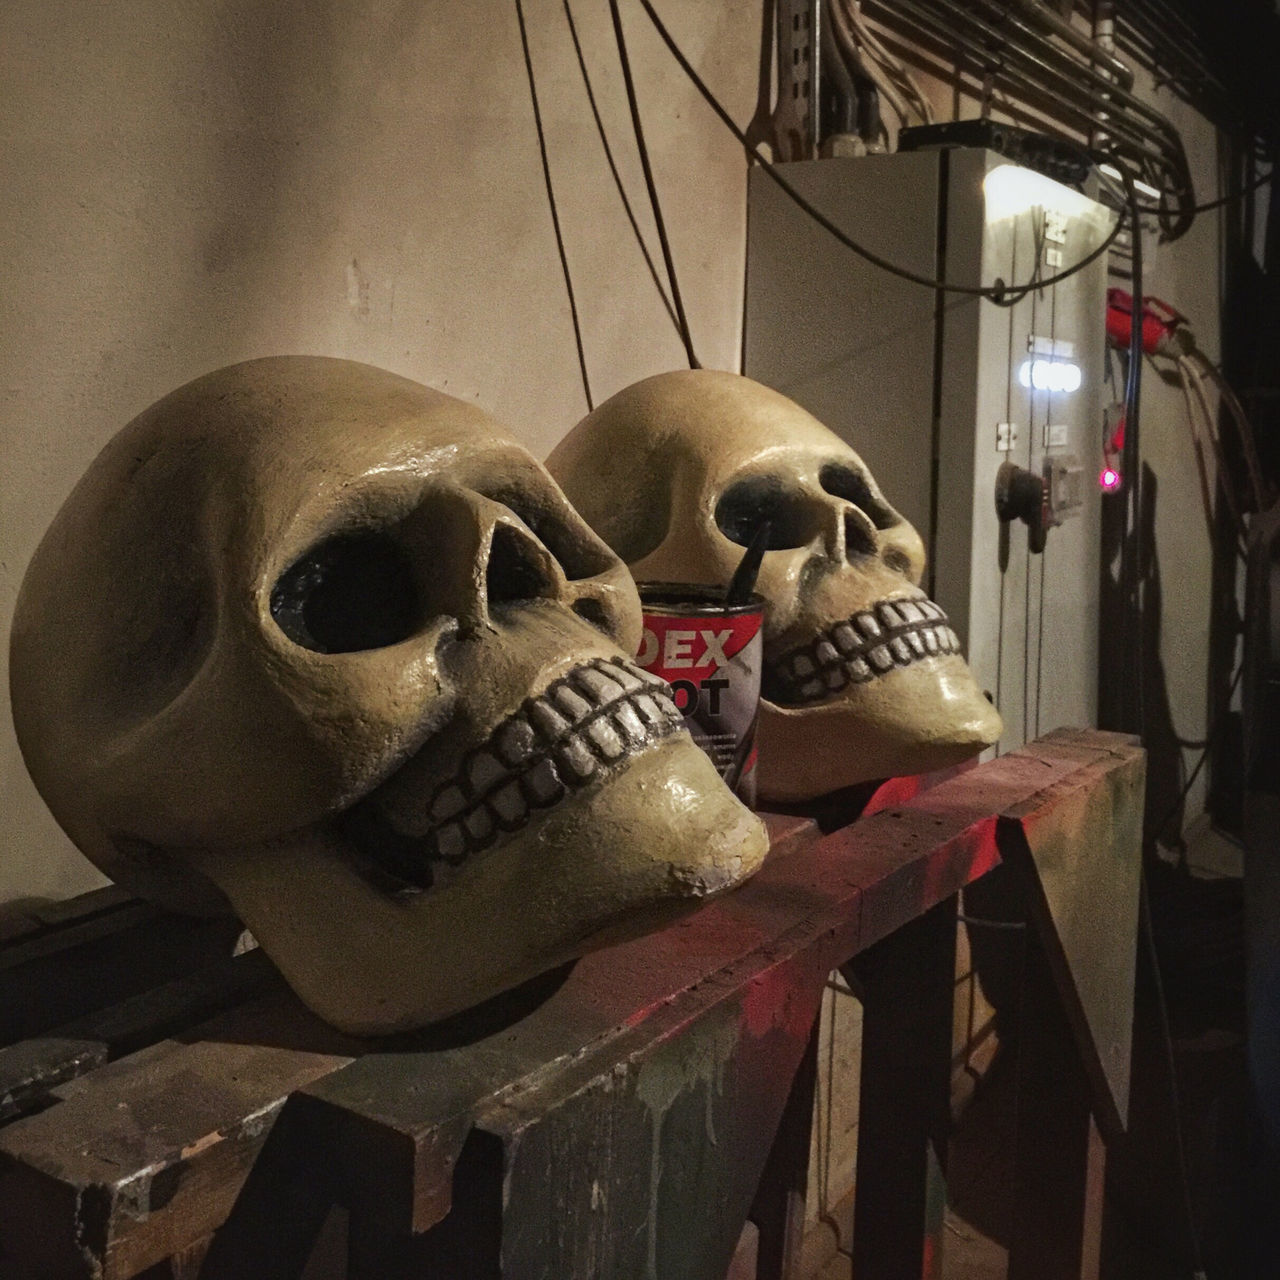 human skull, human skeleton, skull, spooky, indoors, bone, skeleton, close-up, day